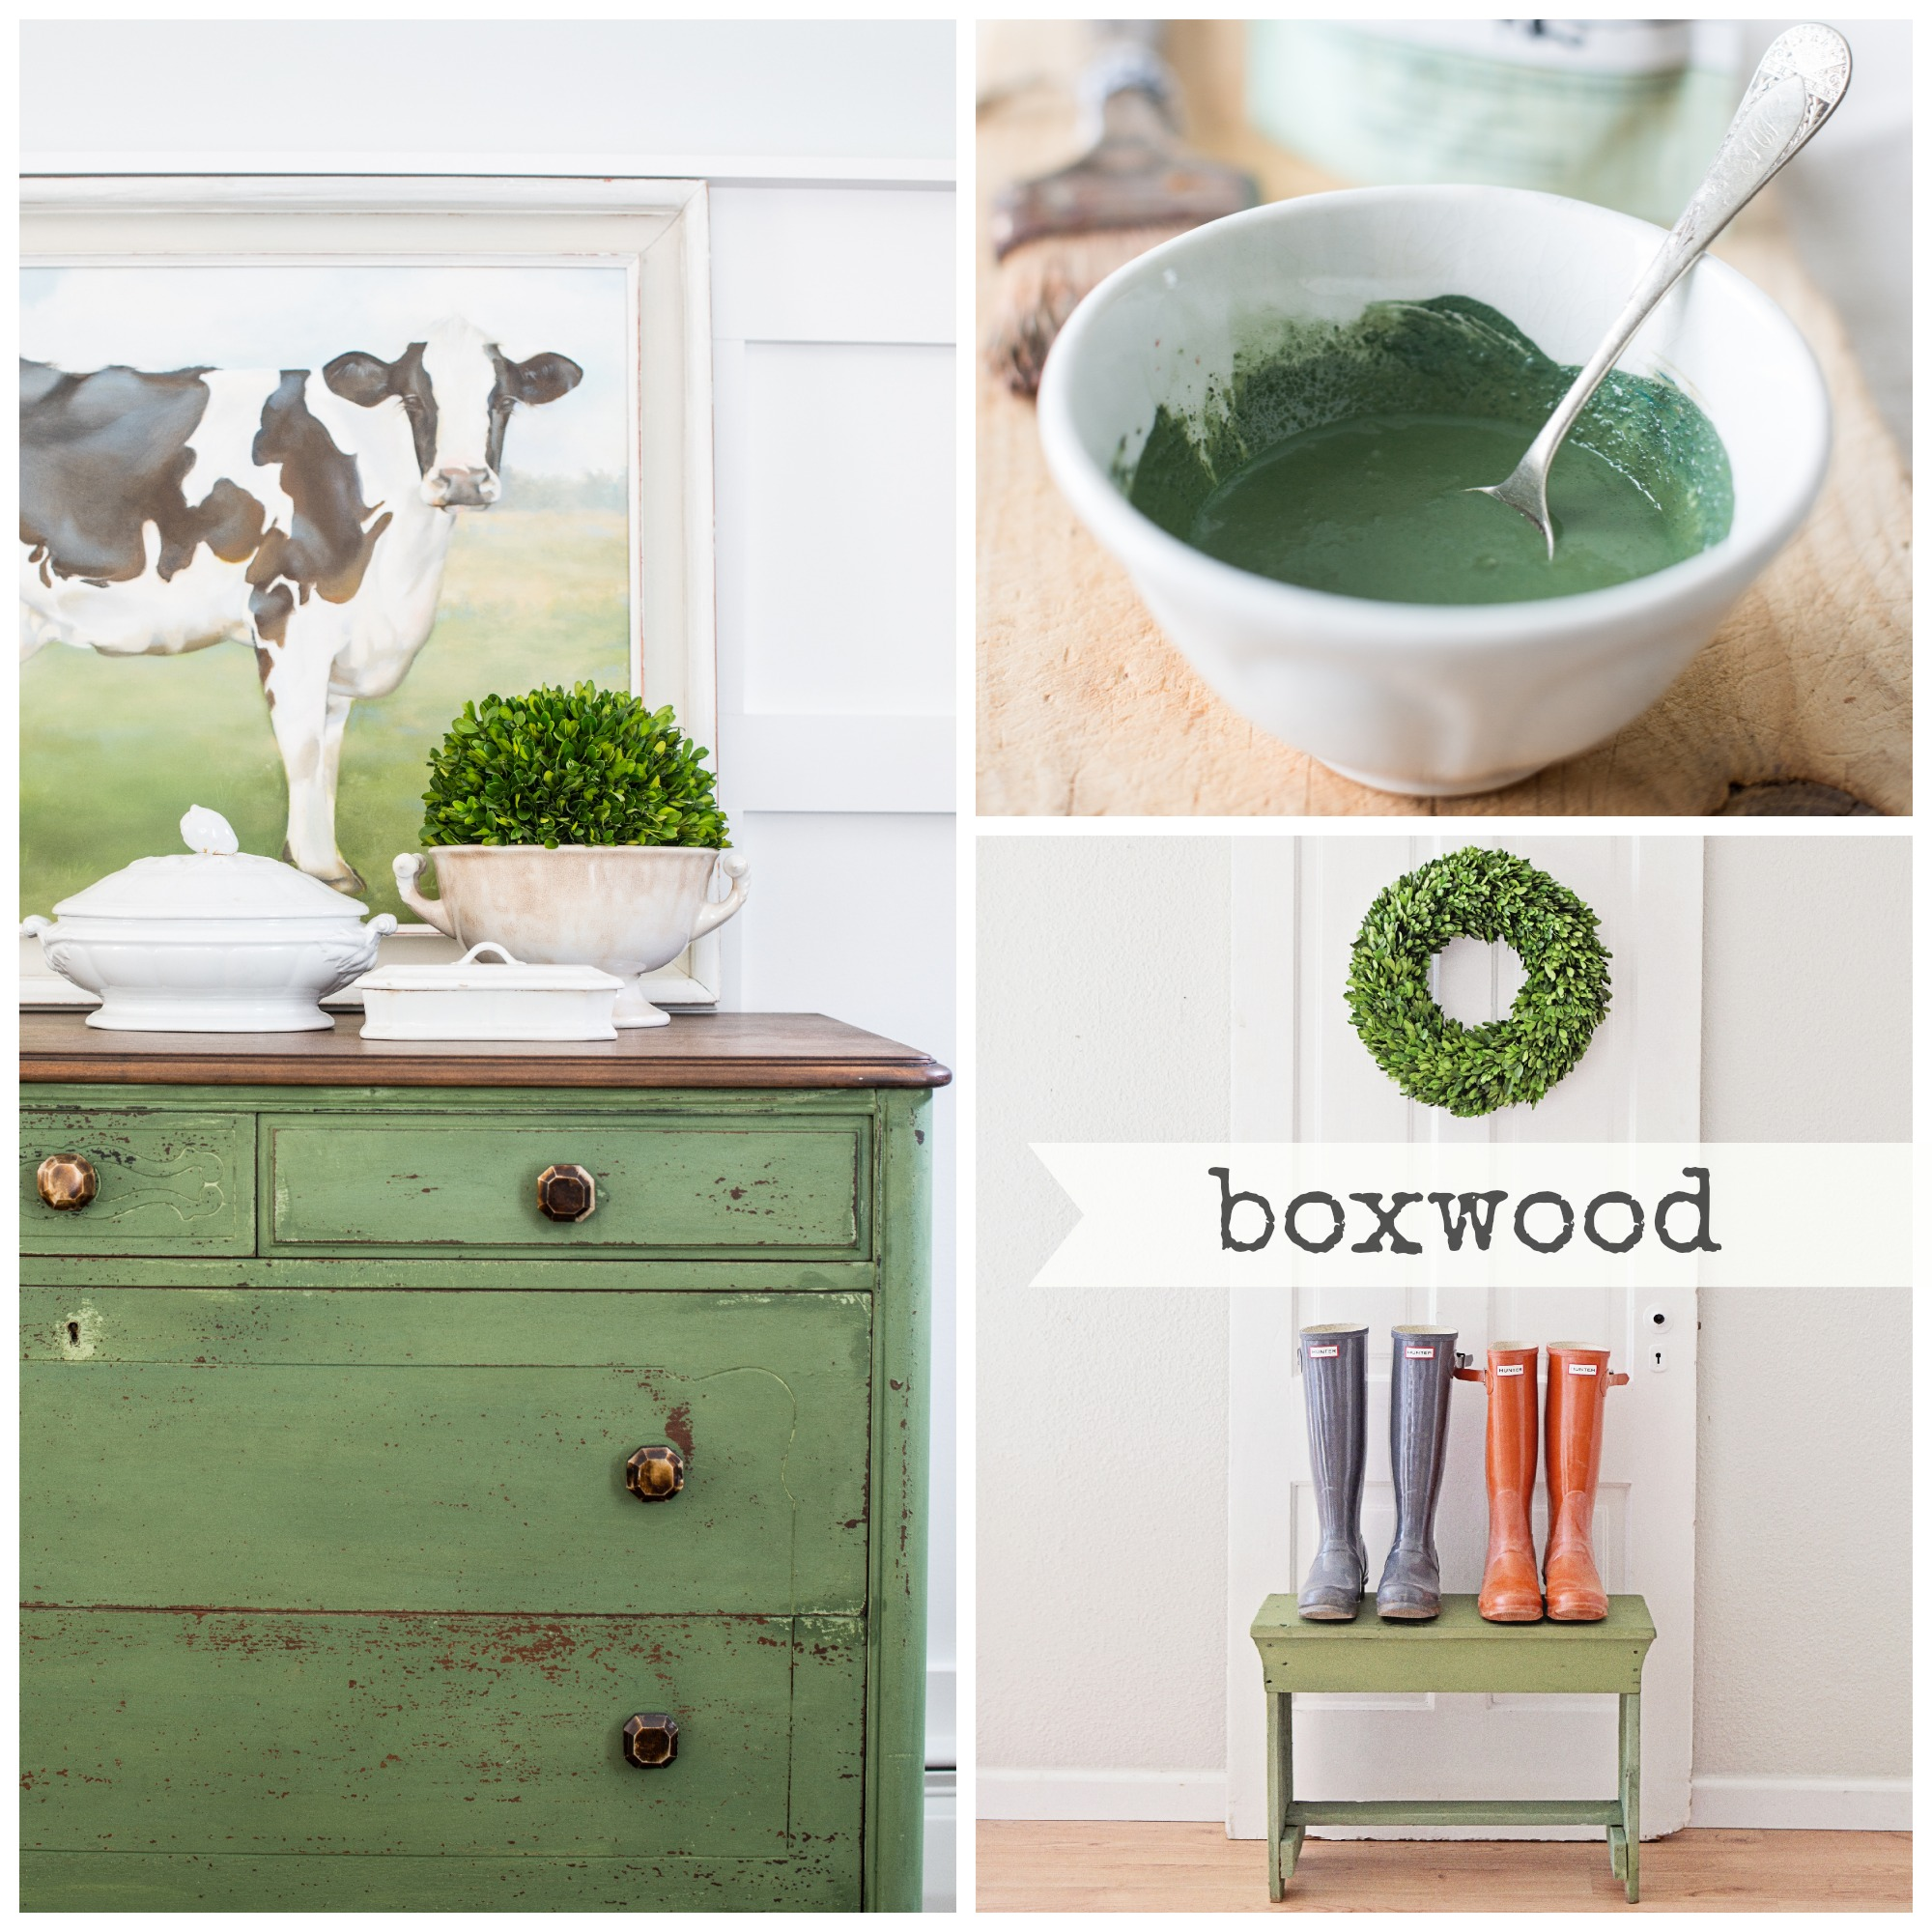 Boxwood-Collage.jpg